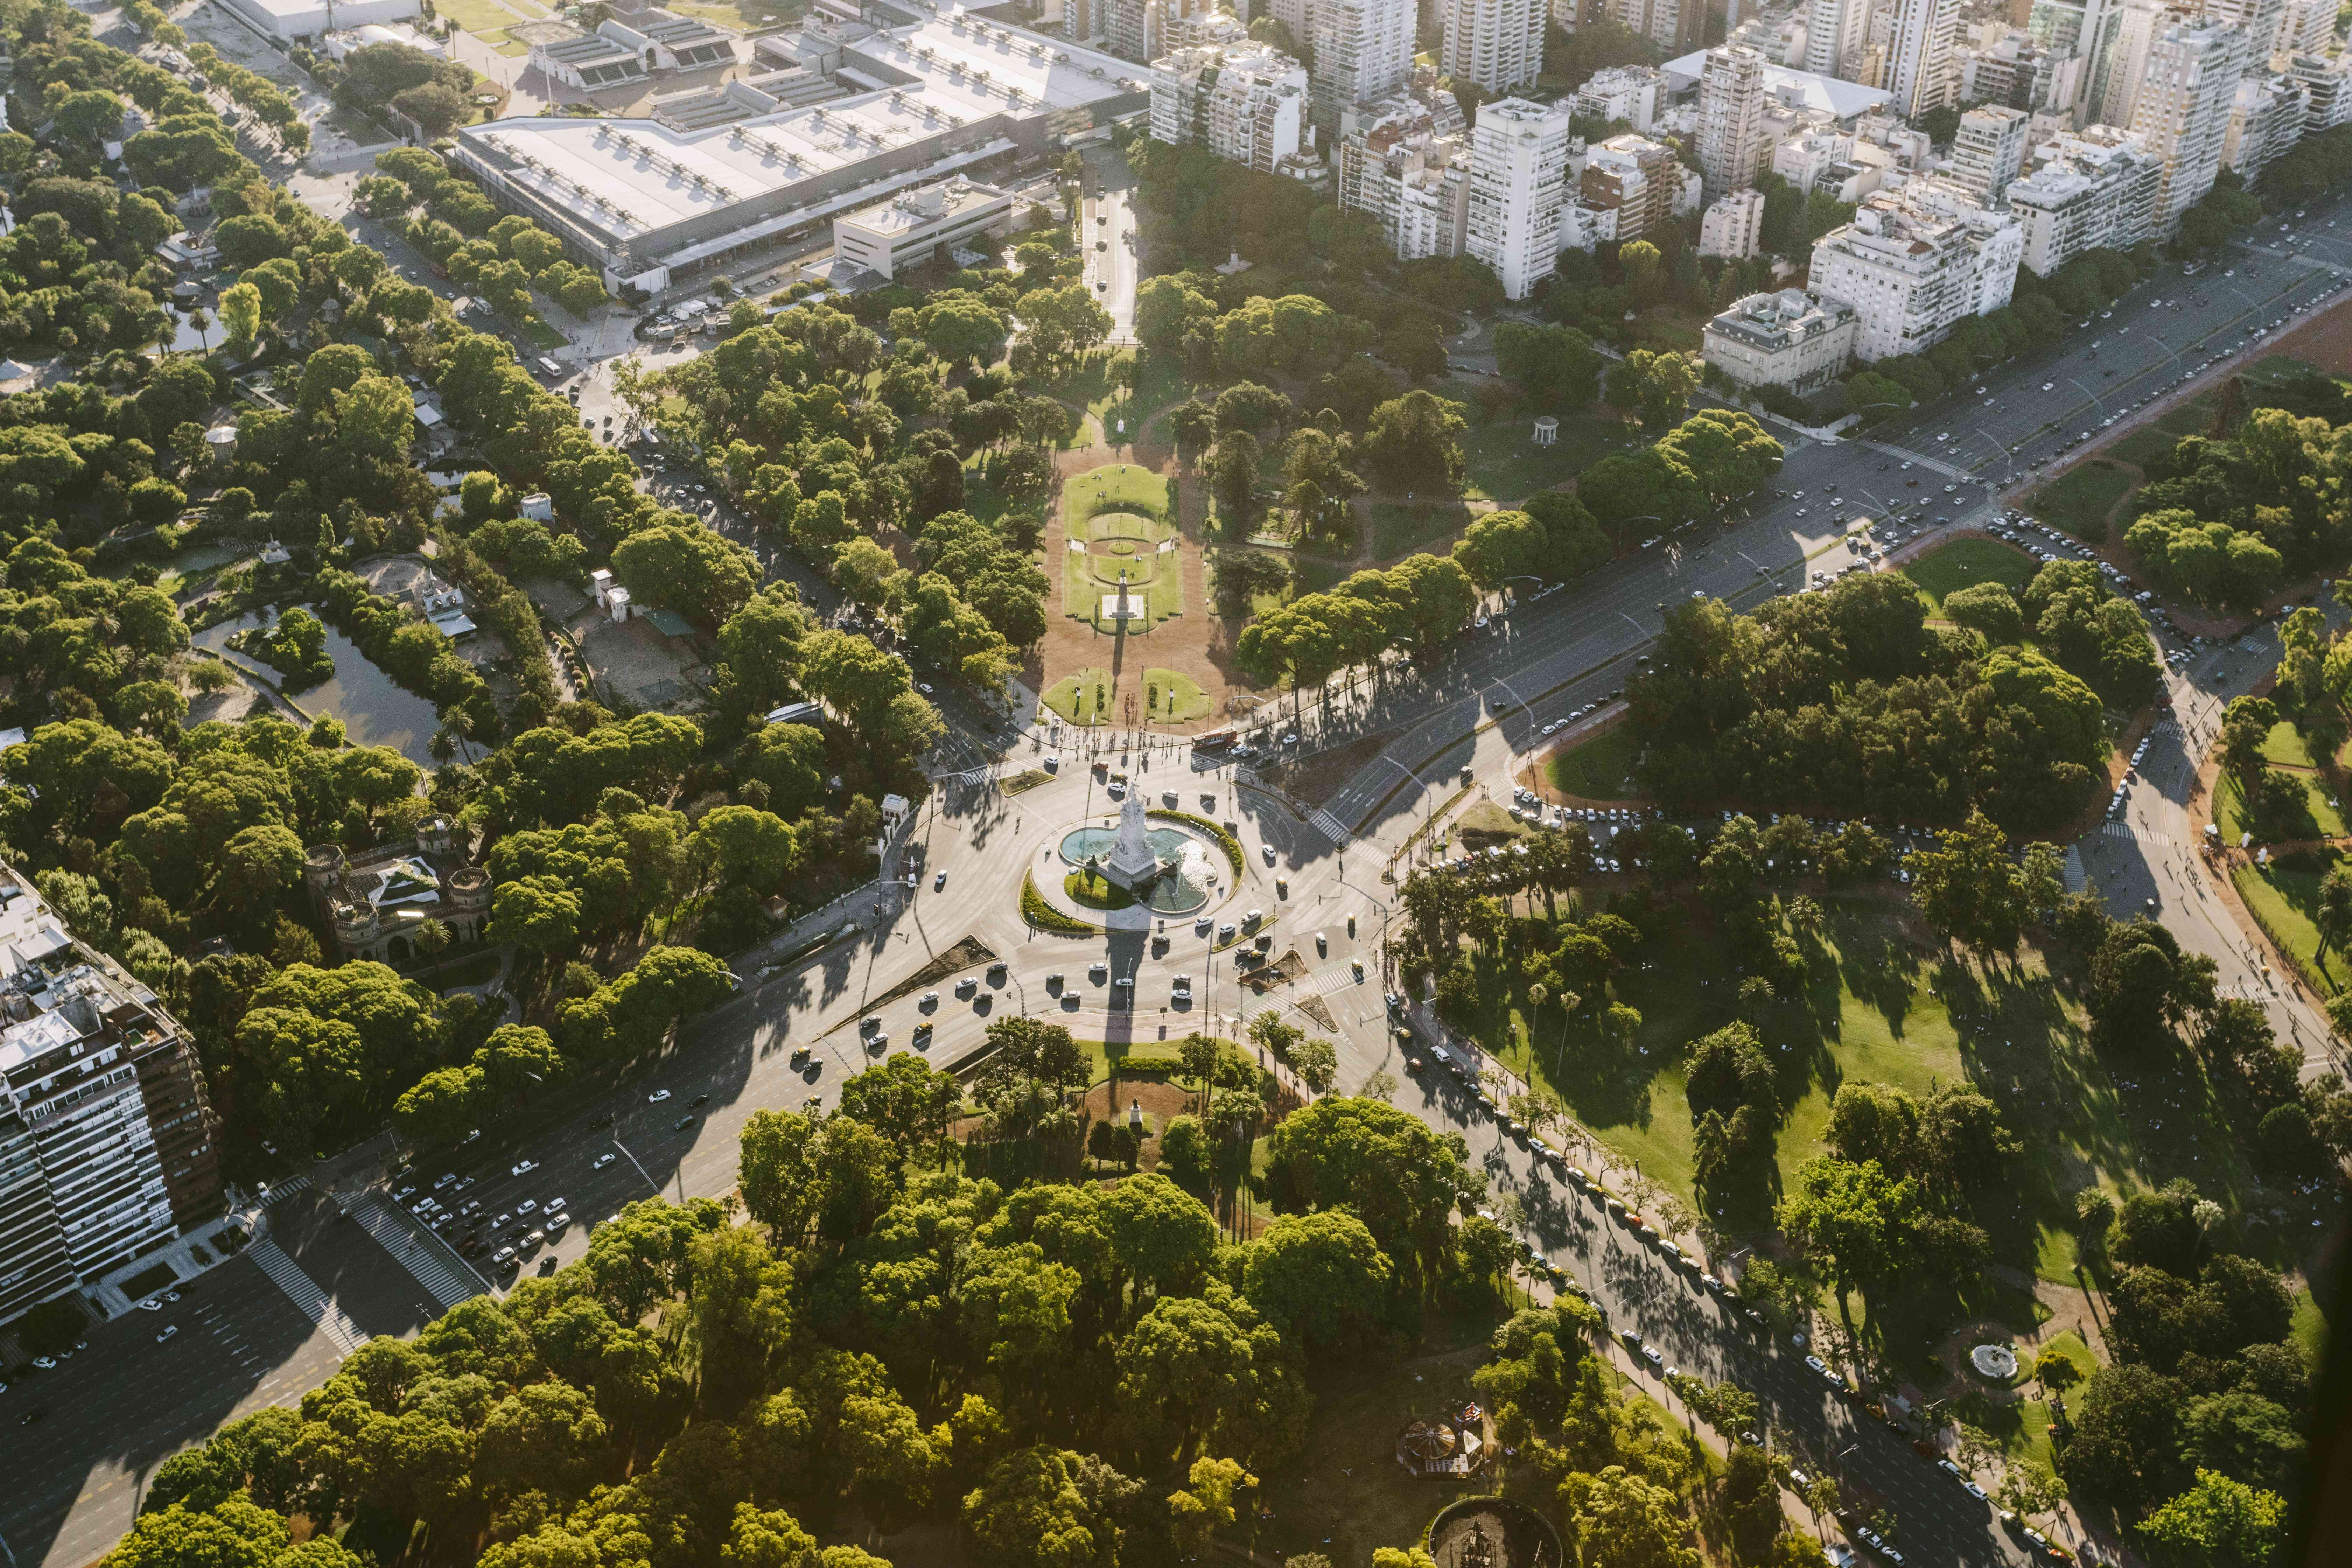 Aerial view of Buenos Aires cityscape and public park